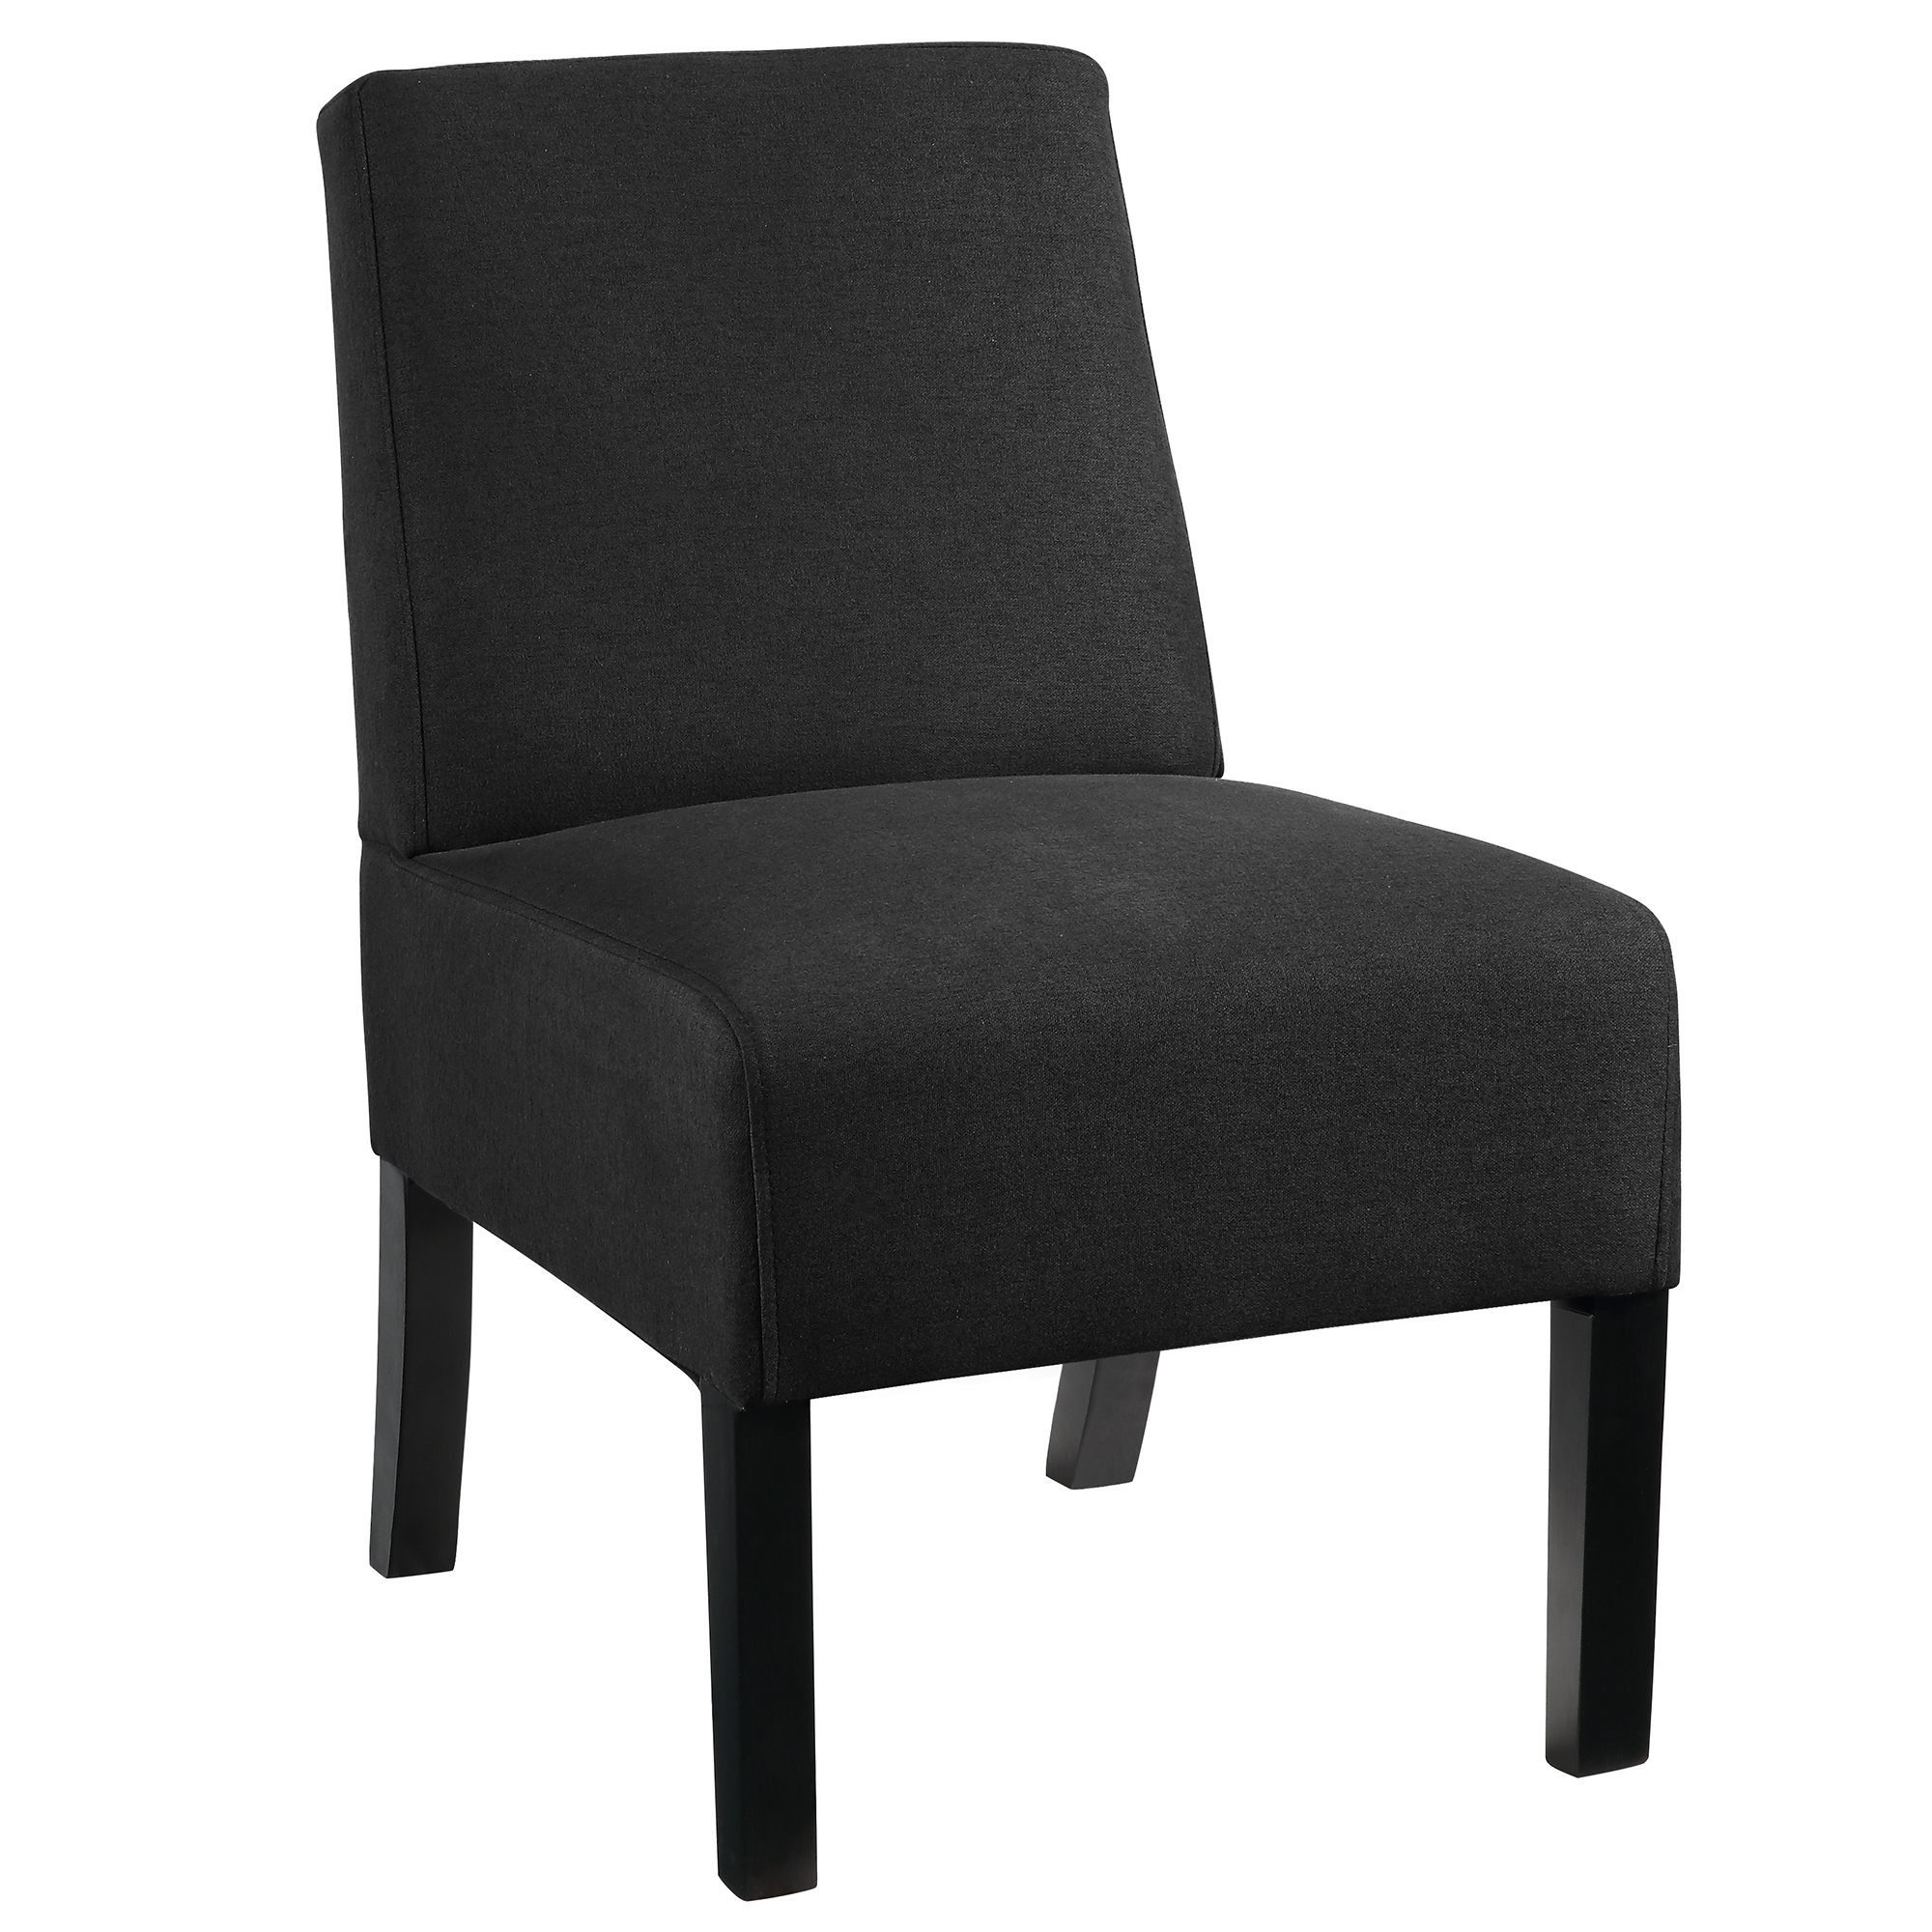 TINO-ACCENT CHAIR-BLACK, 841173032586, Accent Chairs by Midha Furniture to Brampton, Mississauga, Etobicoke, Toronto, Scraborough, Caledon, Oakville, Markham, Ajax, Pickering, Oshawa, Richmondhill, Kitchener, Hamilton and GTA area